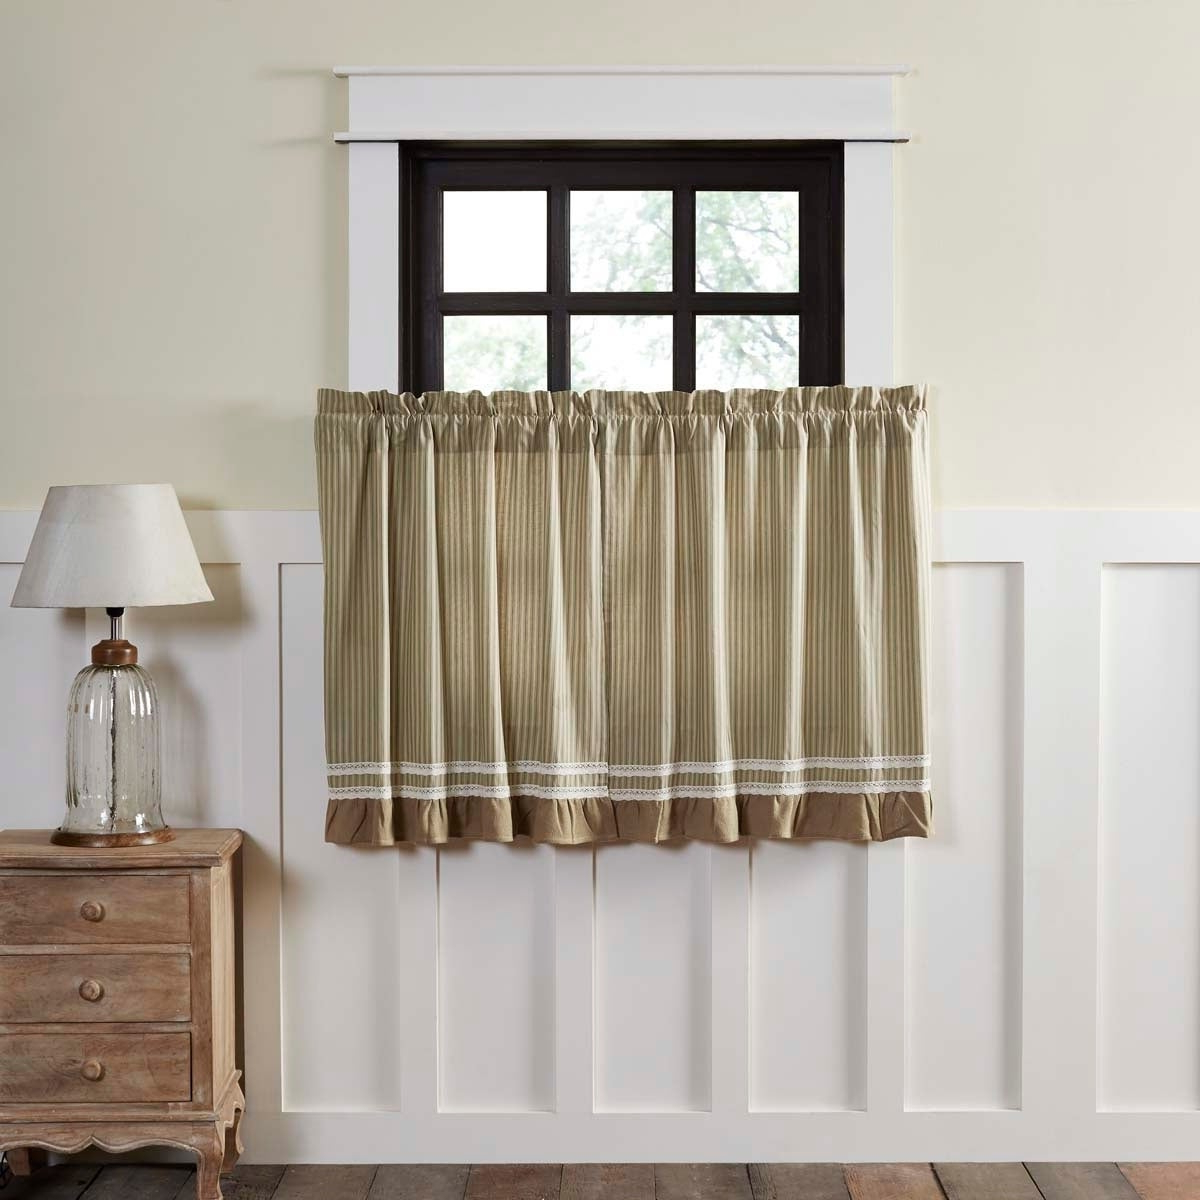 Farmhouse Kitchen Curtains Vhc Kendra Stripe Tier Pair Rod Pocket Cotton  Striped Lace Cotton Burlap In 2020 Farmhouse Stripe Kitchen Tier Pairs (View 8 of 20)